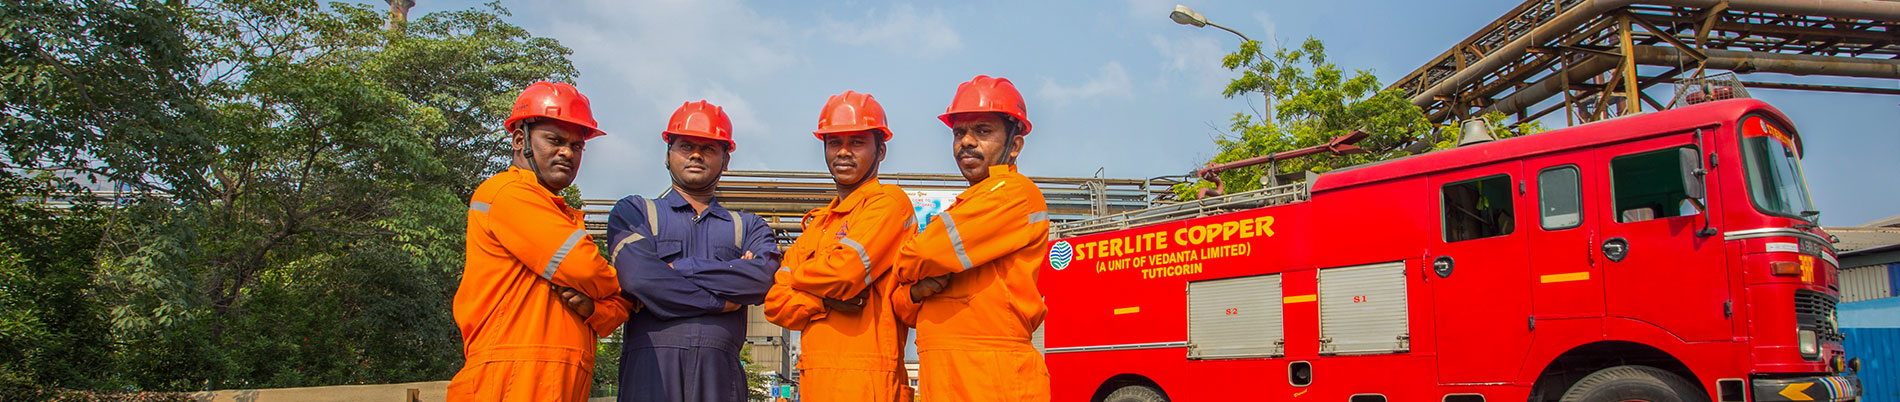 Sterlite Copper Logo